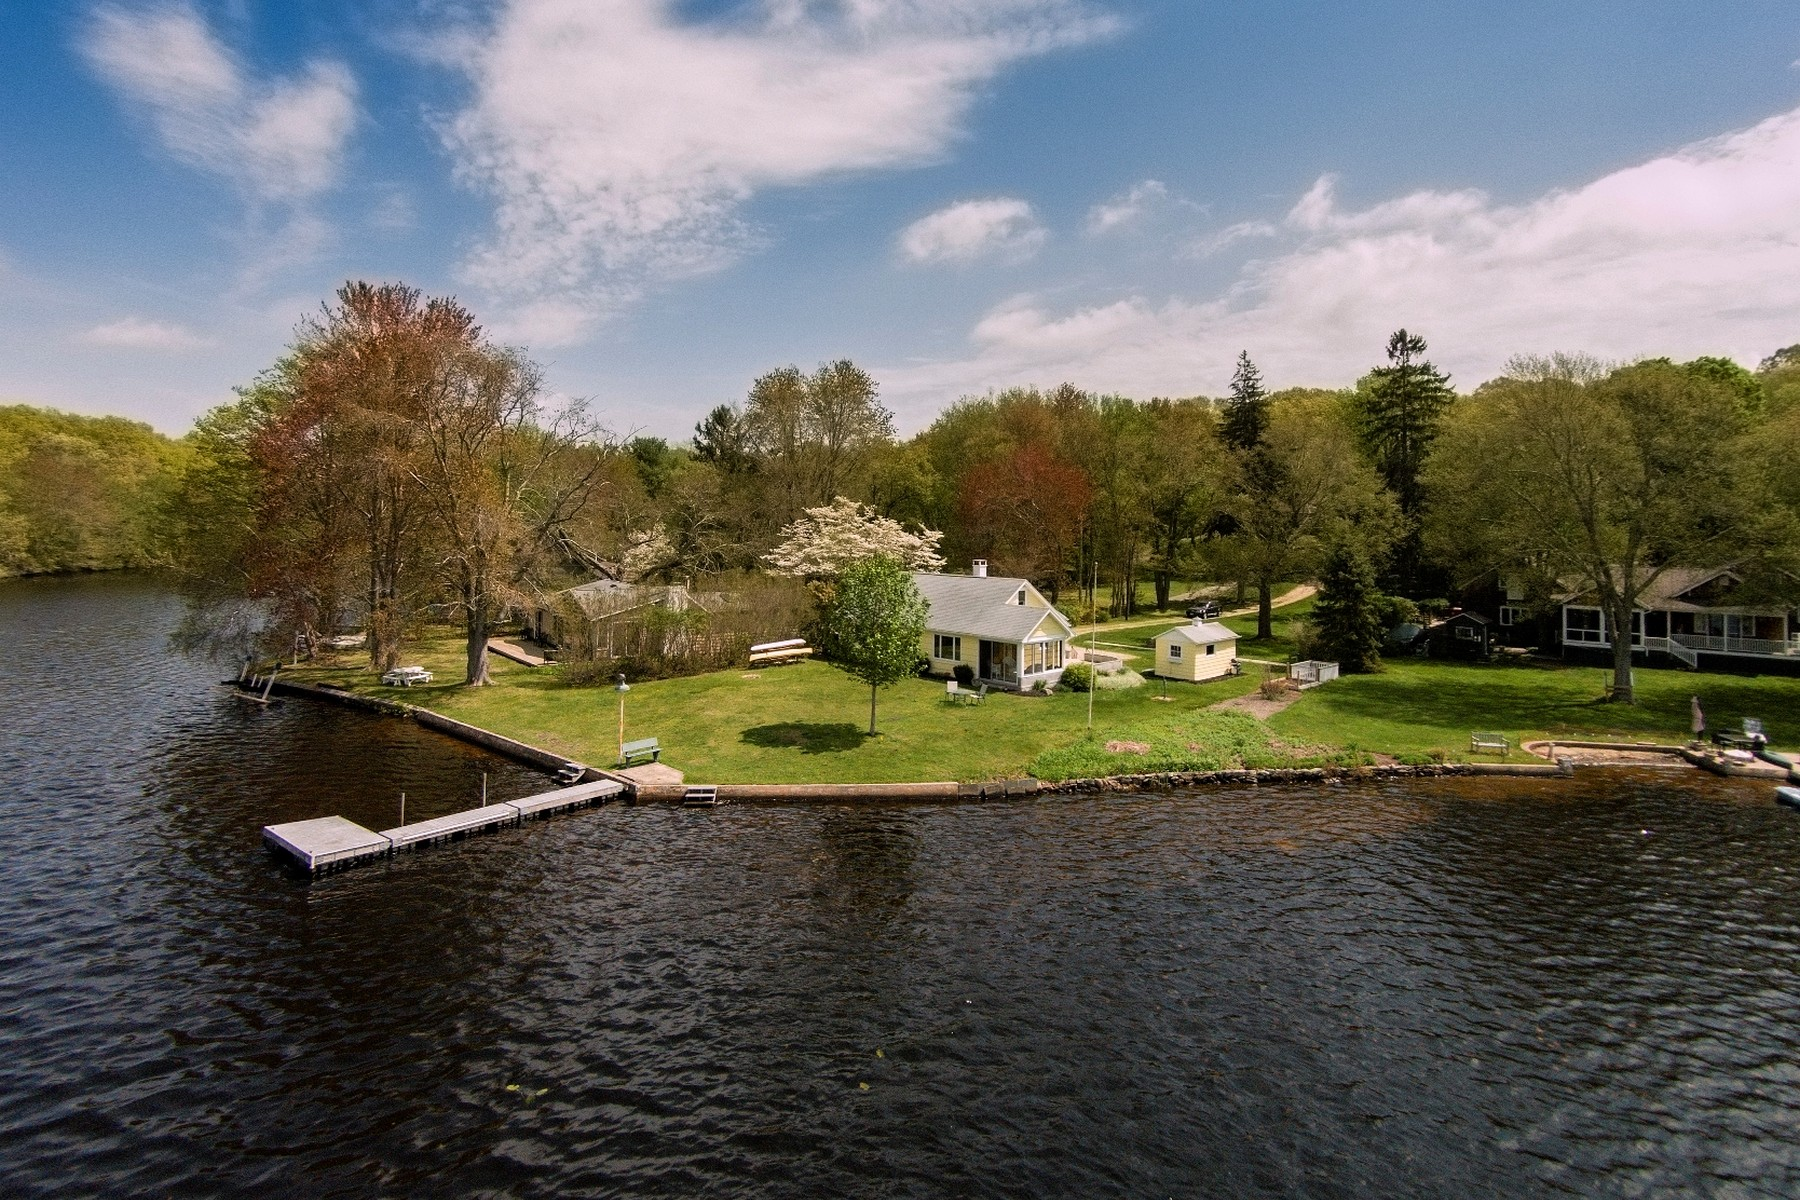 Single Family Home for Sale at Waterfront Living at Rogers Lake 76 Grassy Hill Rd Old Lyme, Connecticut 06371 United States